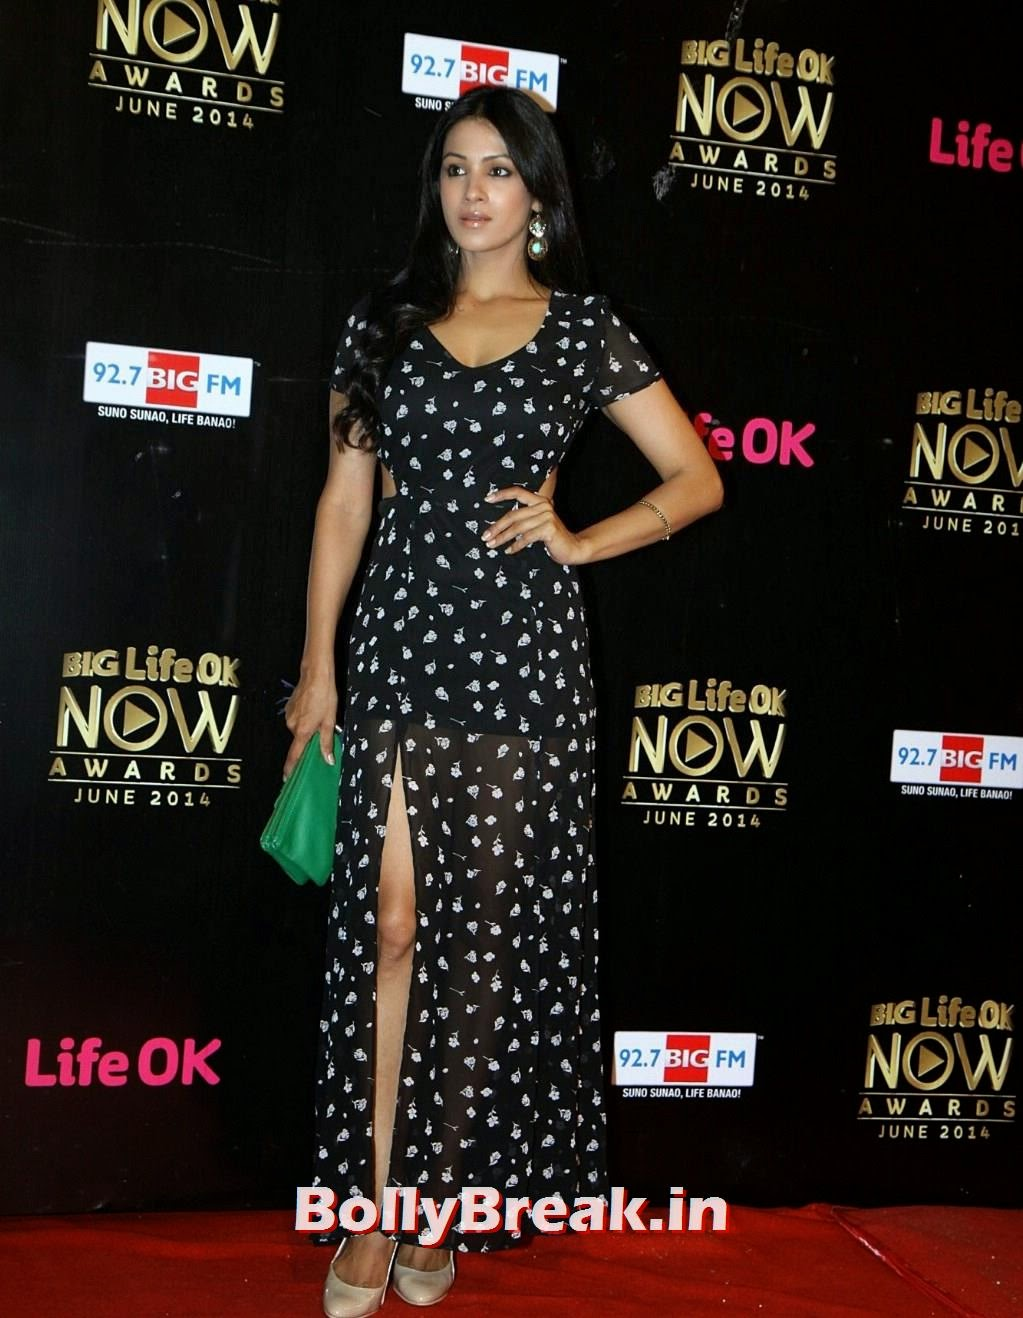 Barkha Bisht  HD pics from Life Ok Now Awards 2014, Barkha Bisht Latest Hot HD Pics from Life Ok Now Awards 2014